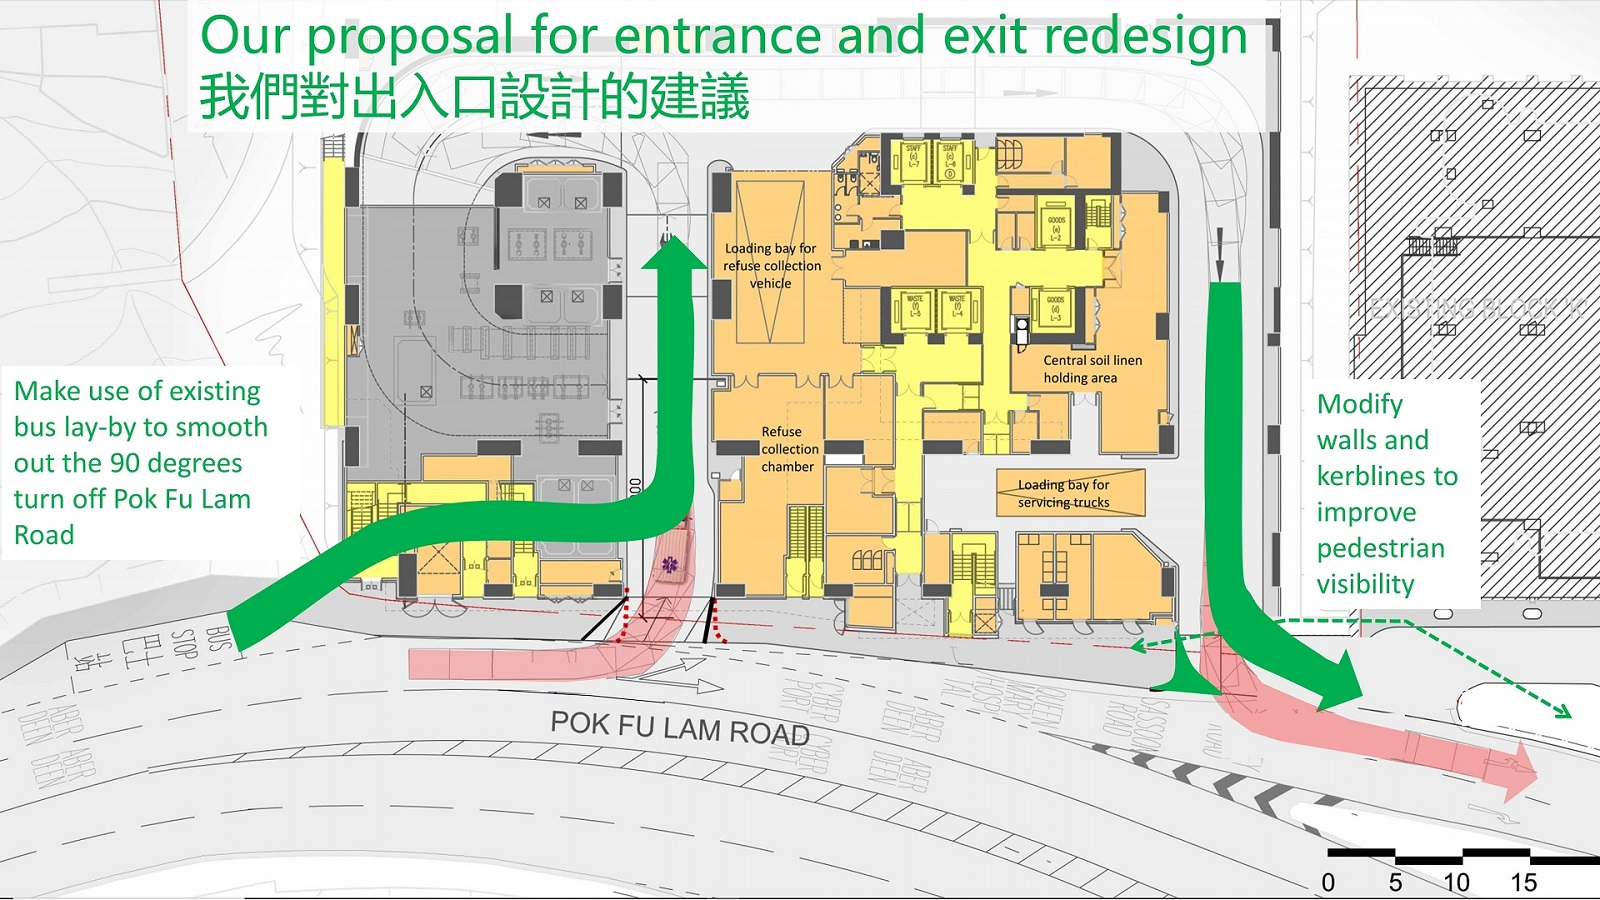 Our proposal for entrance and exit redesign